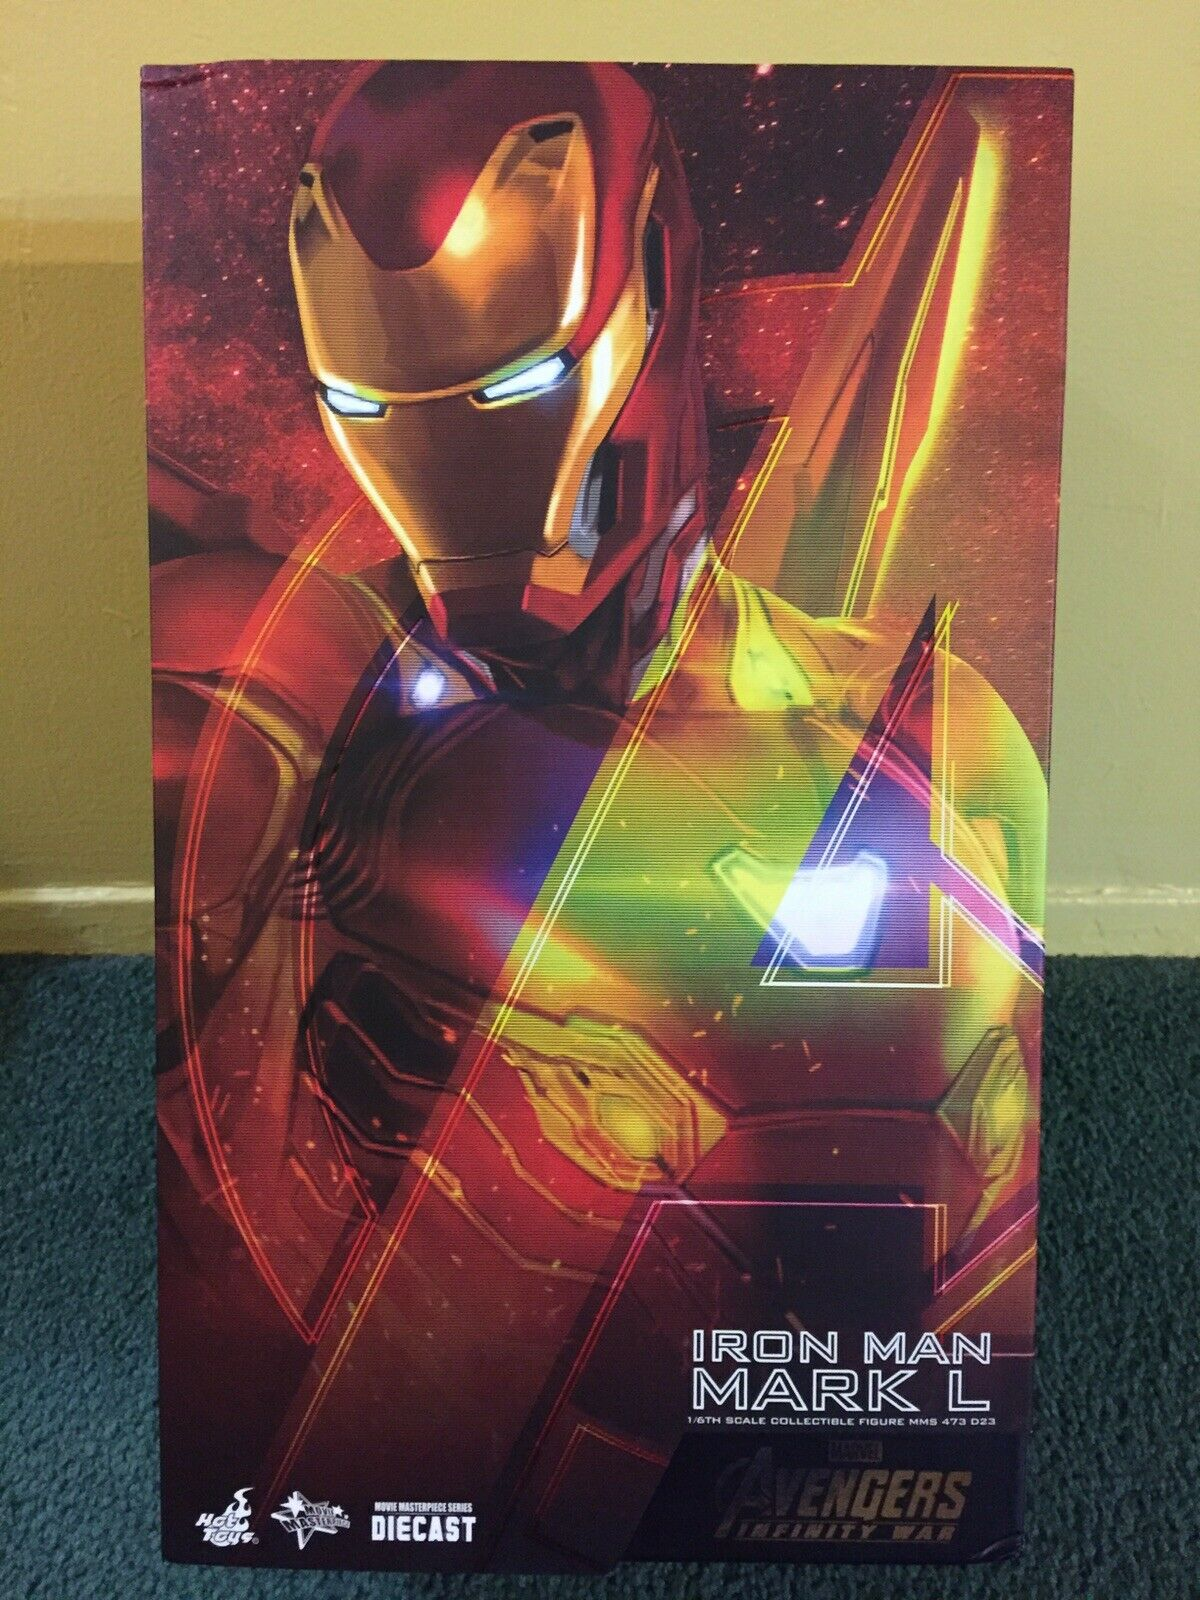 Hot Toys EMPTY ONLY Avengers Infinity War Iron Man Mark L 50